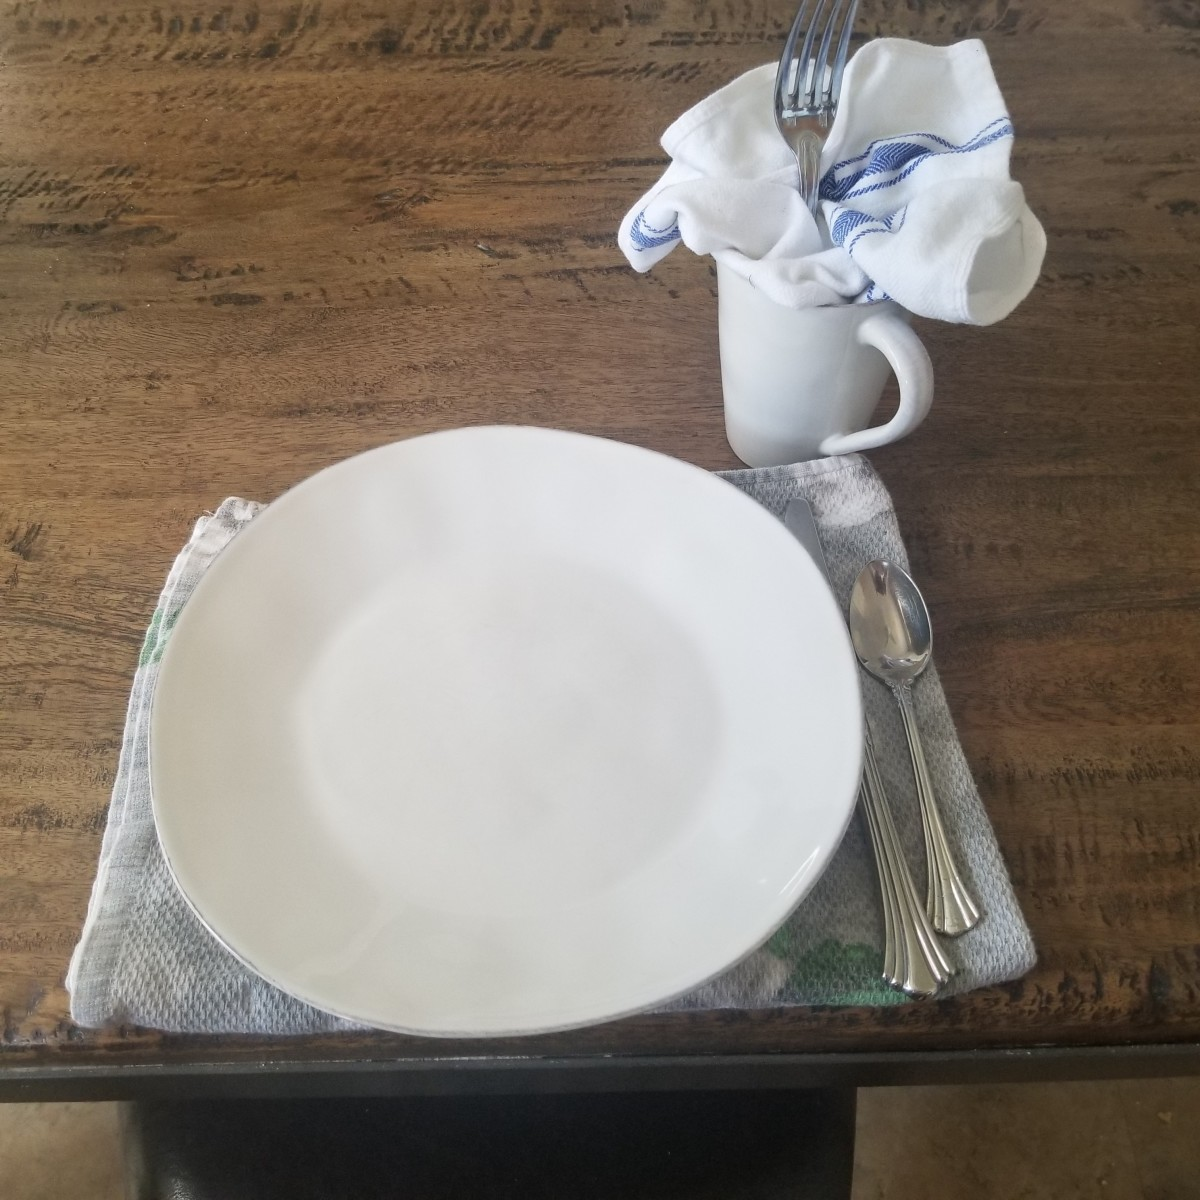 Here a dish towel doubles as a placemat, and another one is tucked into a cup to use as a napkin.